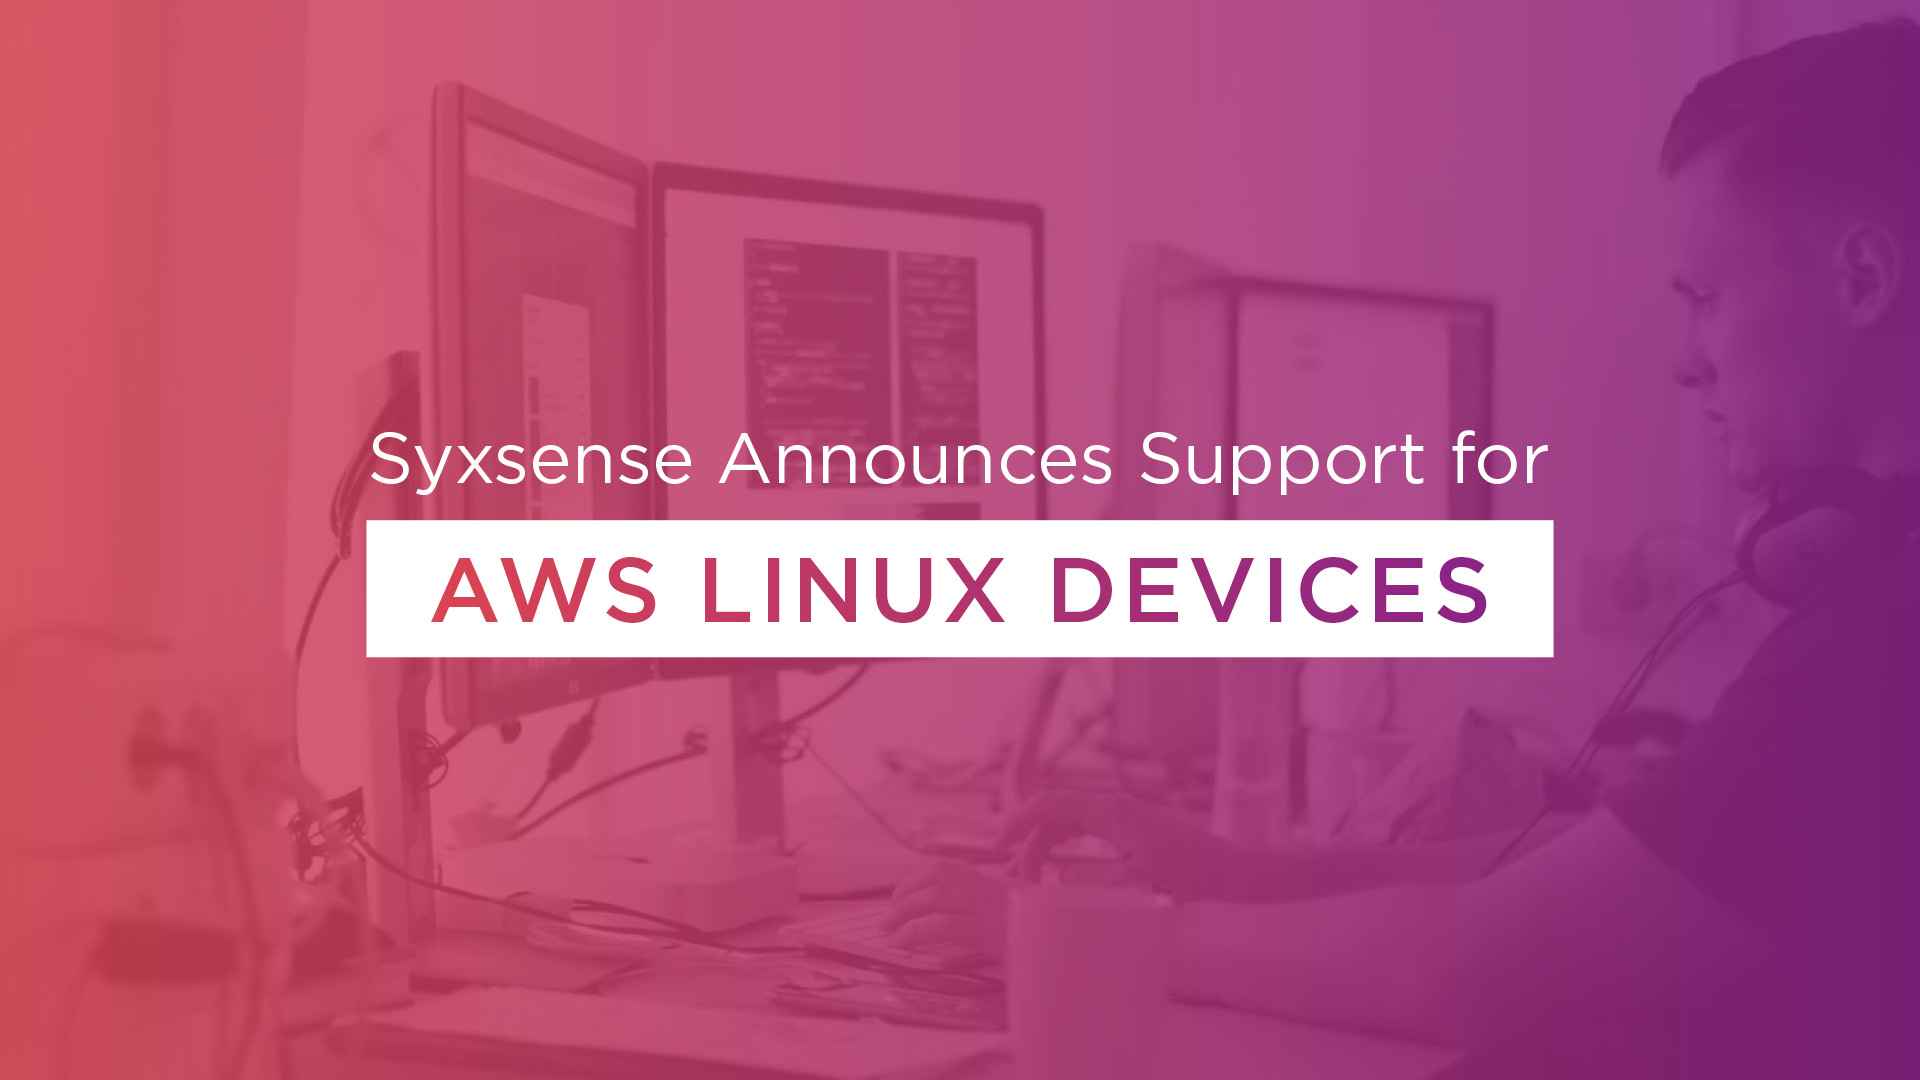 Syxsense Releases Support for AWS Linux